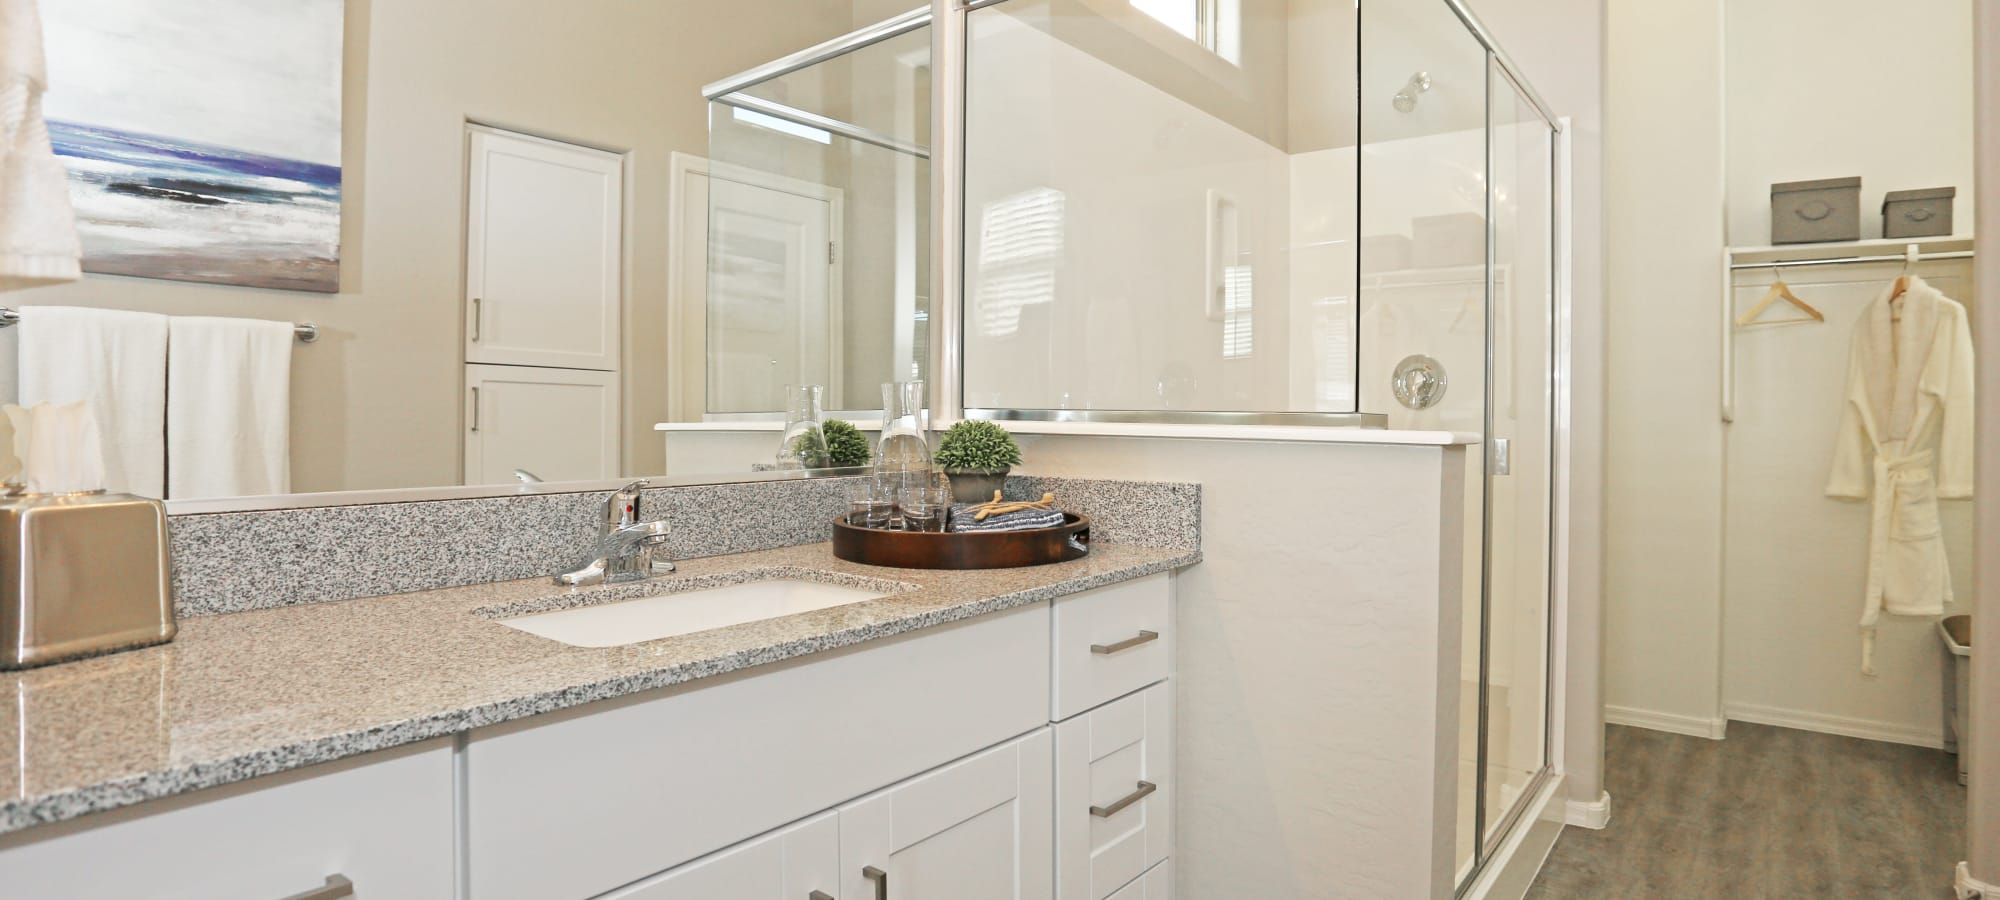 Granite countertop in the bathroom of a model home at Christopher Todd Communities On Happy Valley in Peoria, Arizona